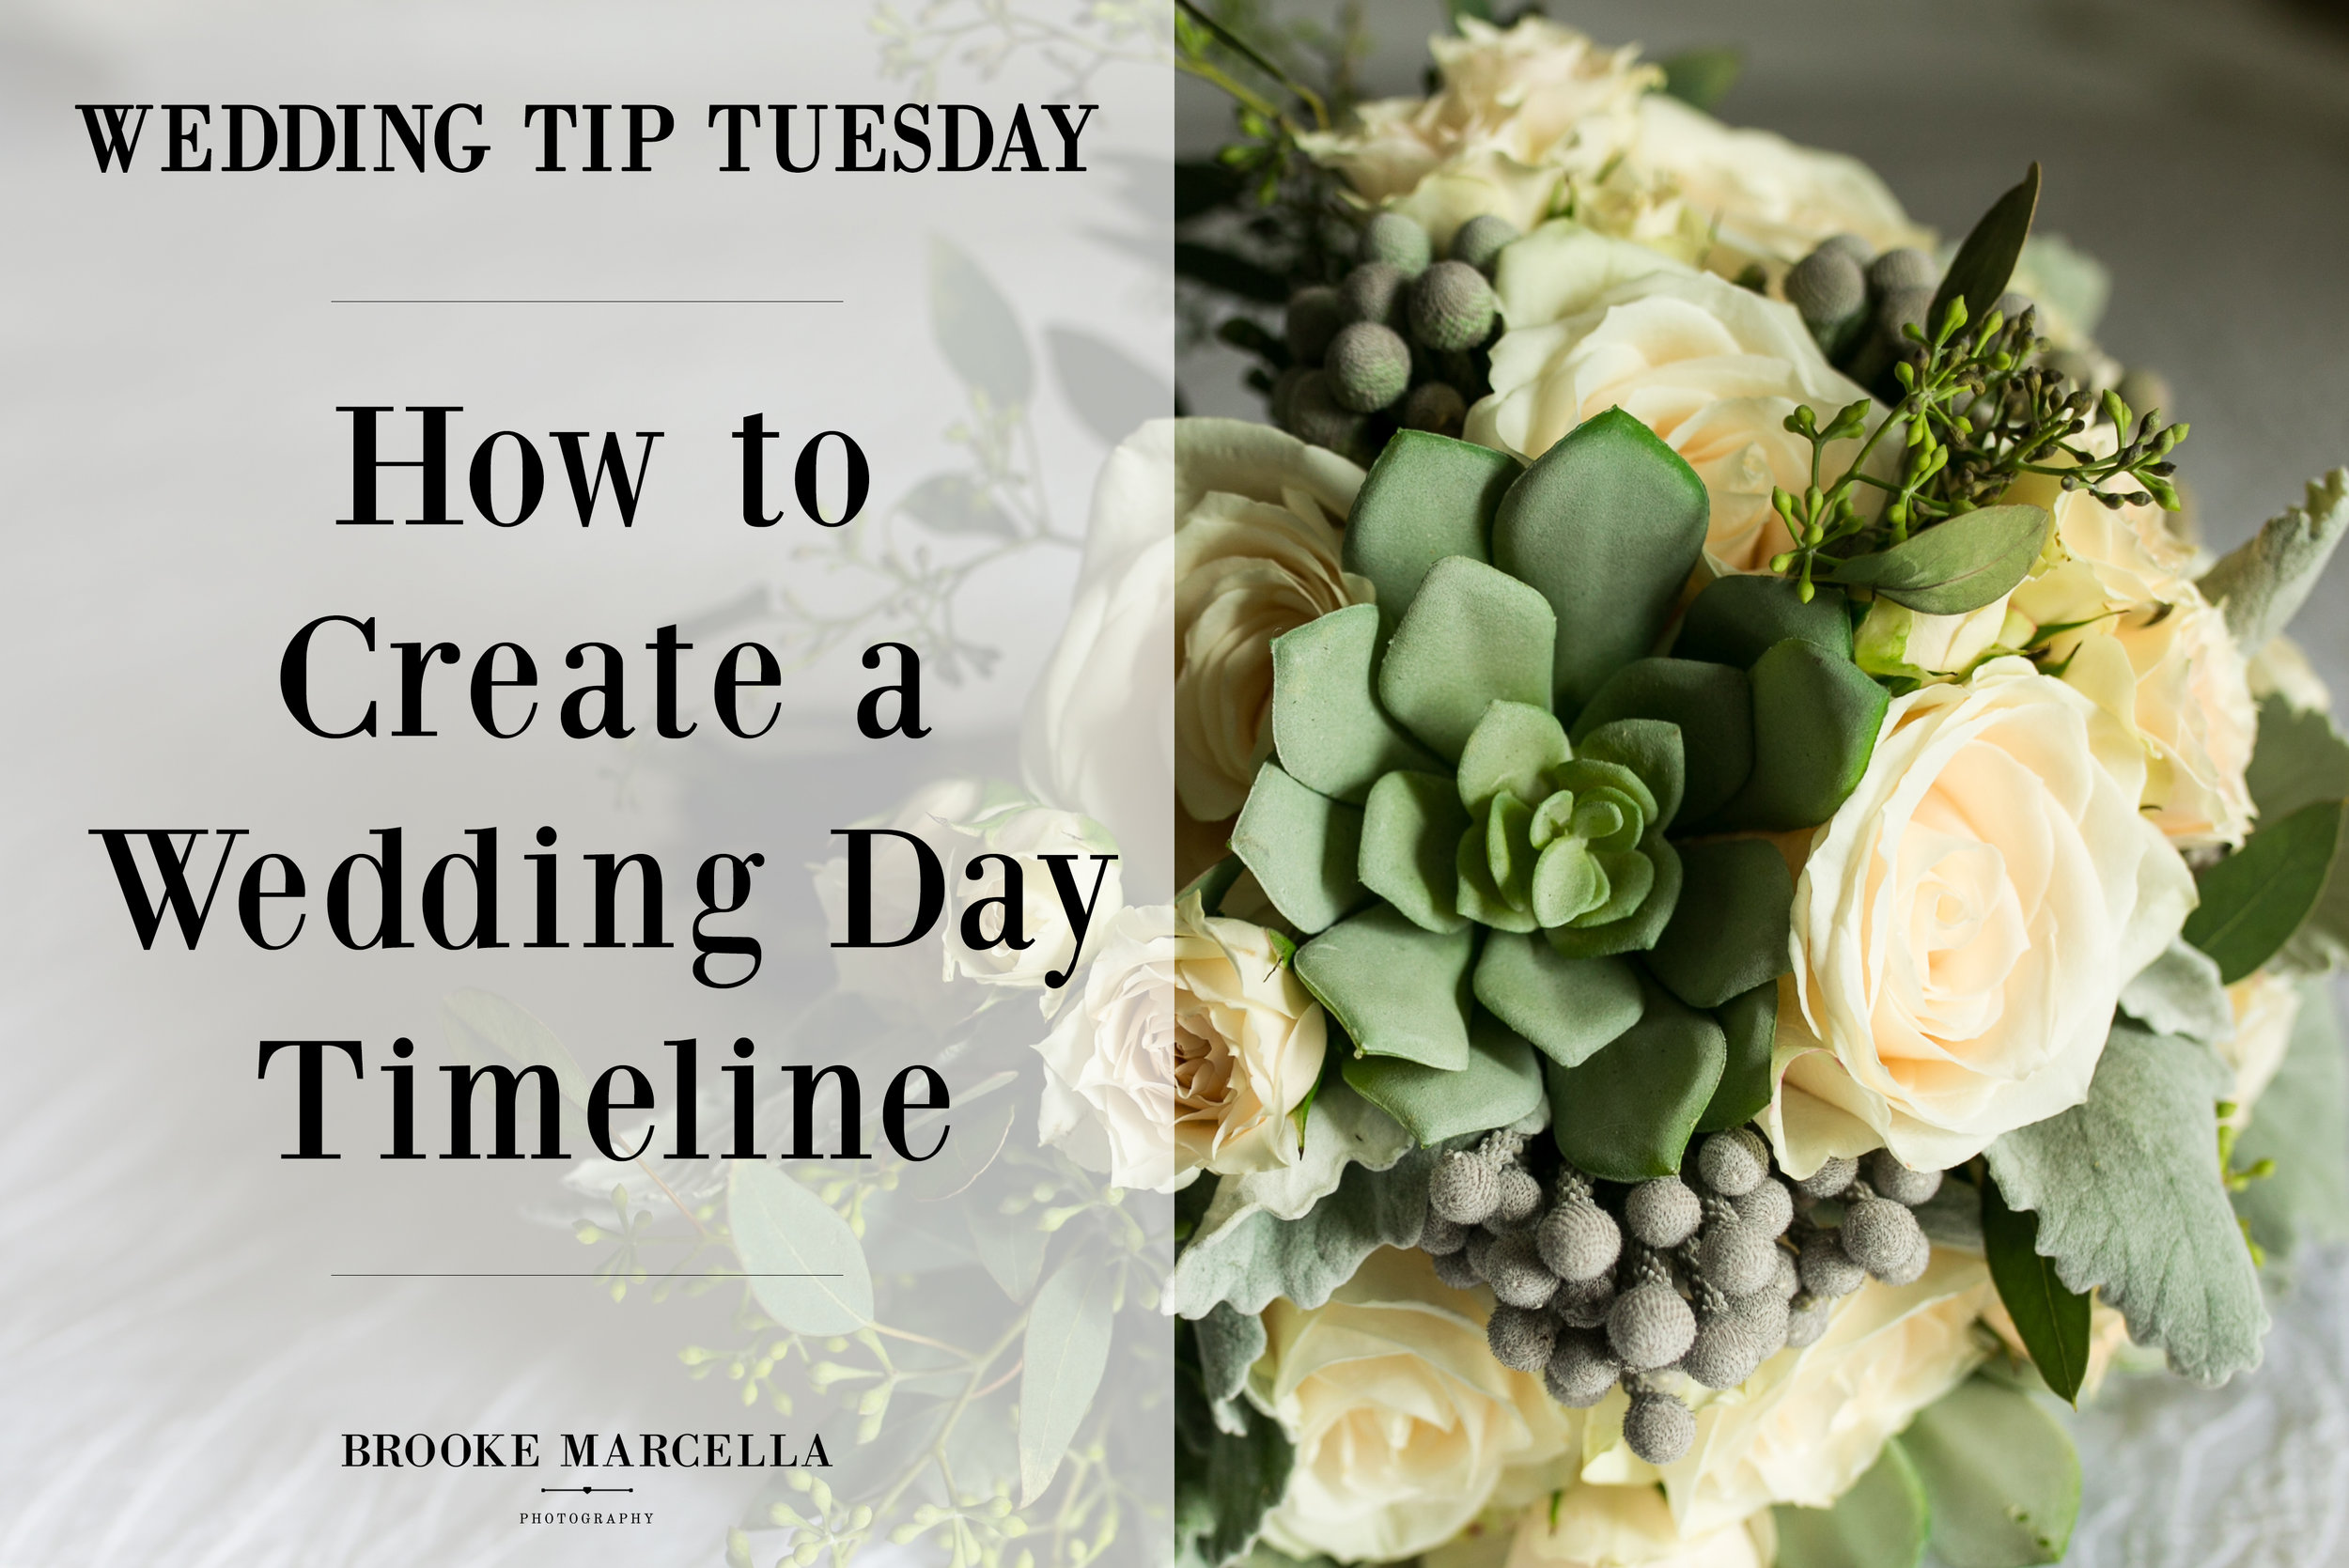 Tips on creating a wedding day timeline.